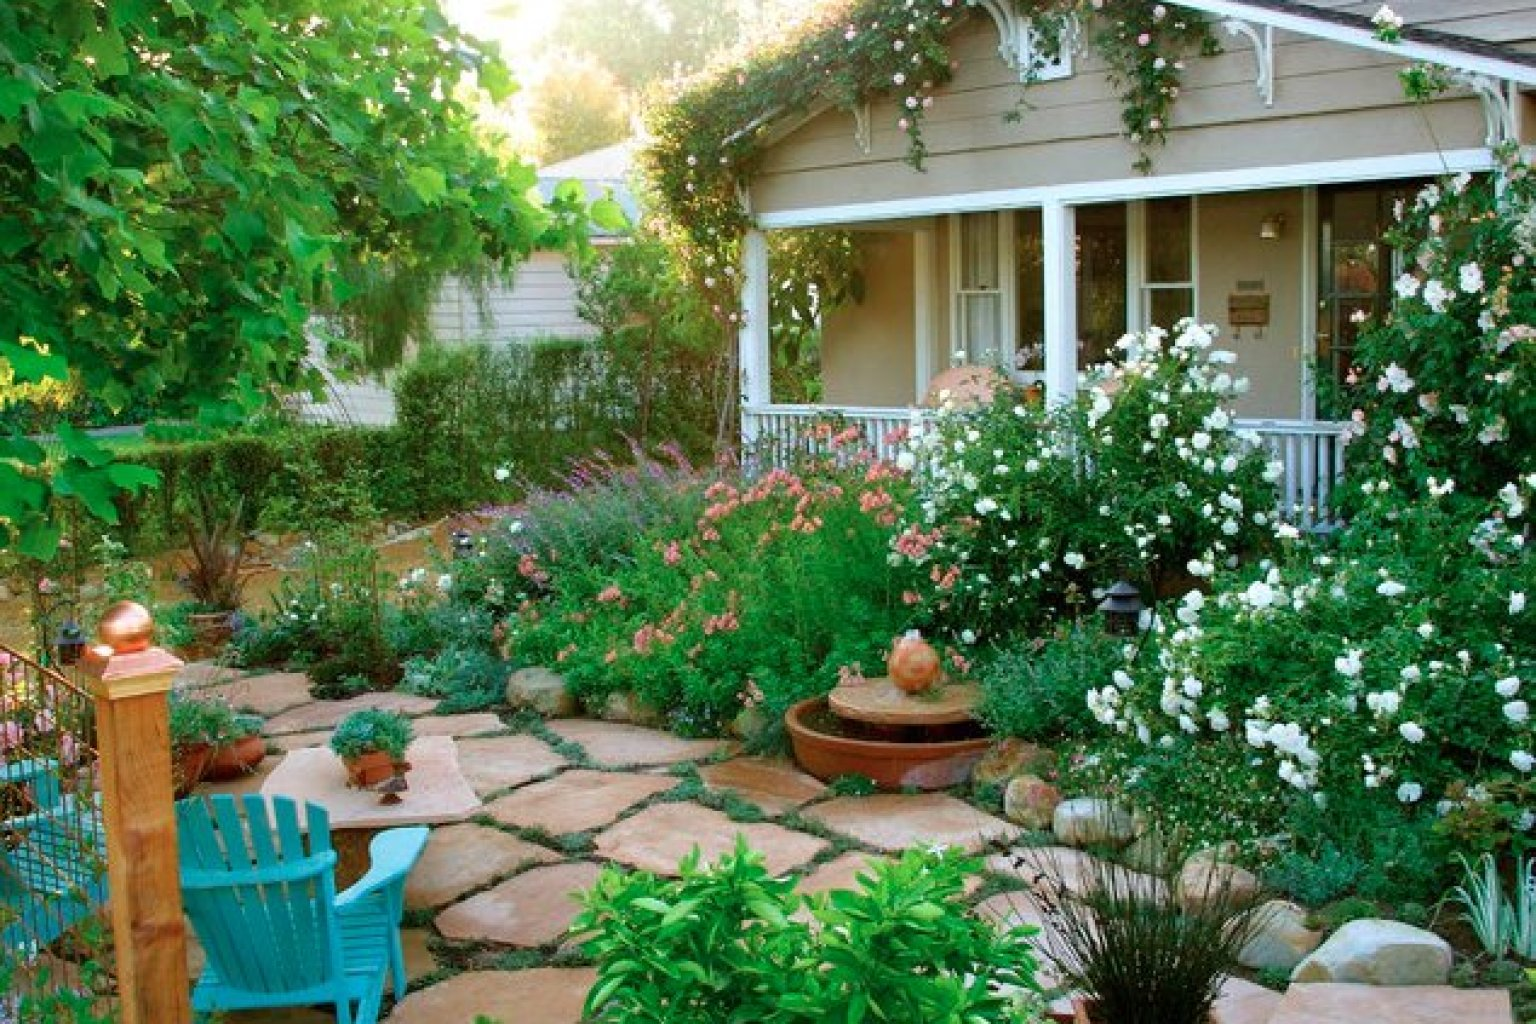 10 Cottage Gardens That Are Just Too Charming For Words PHOTOS